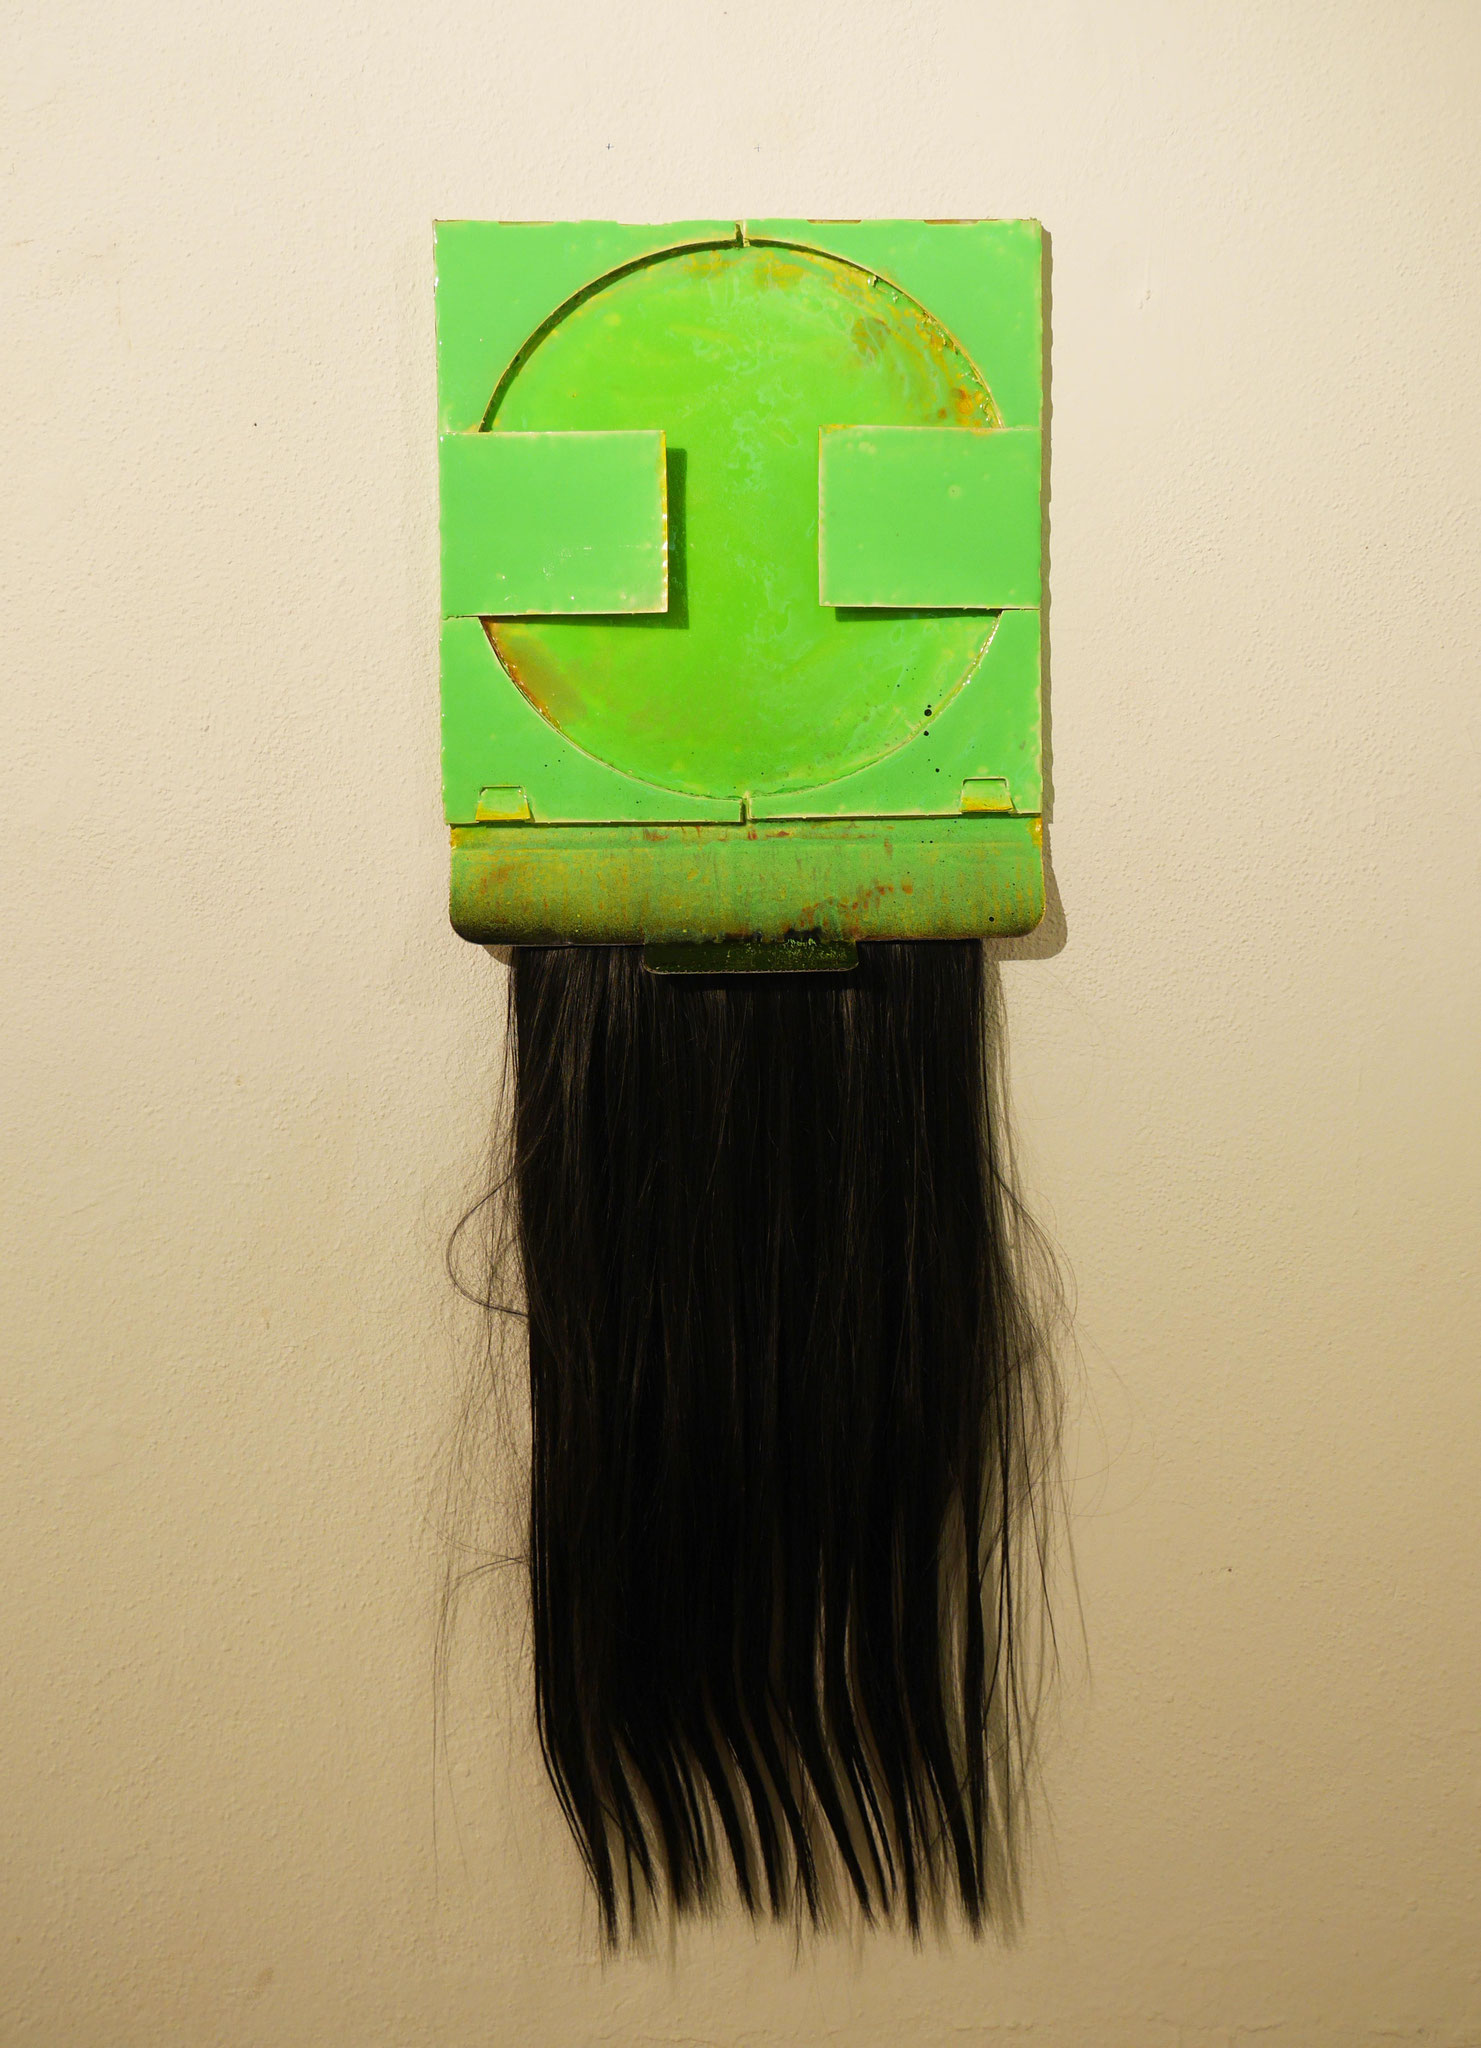 Circular Saw, 2016, hair extension and carton coated with polyurethane, 42(98)x33cm